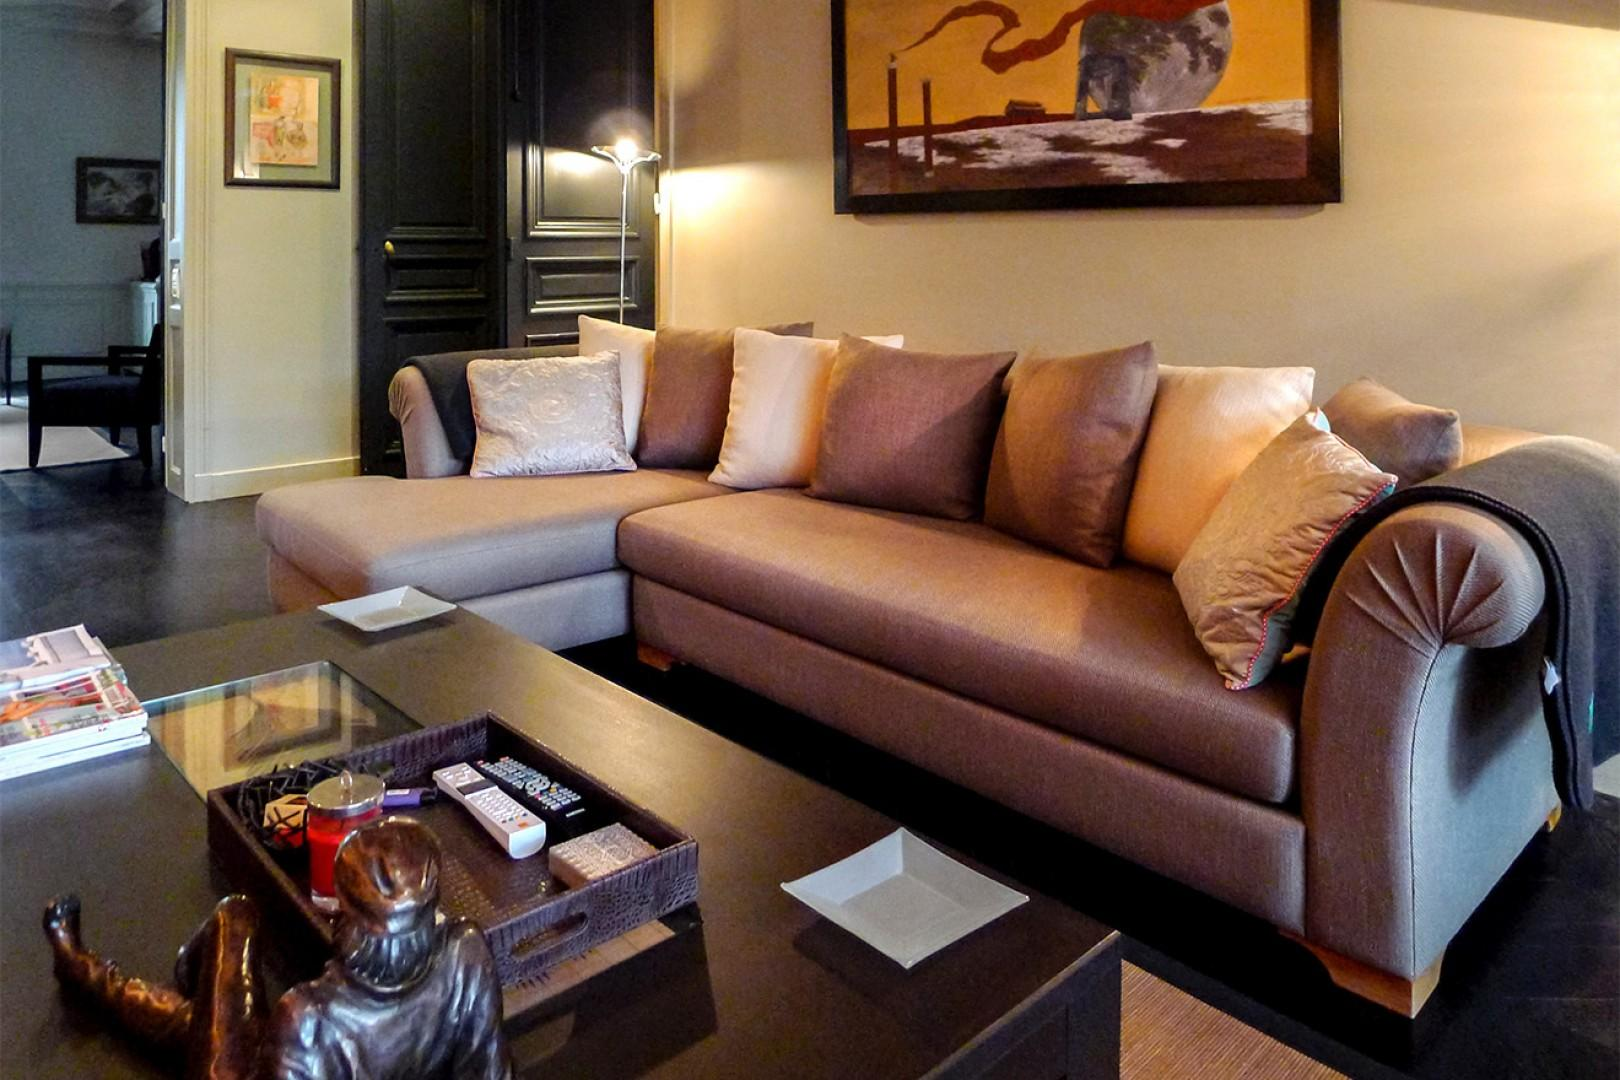 Relax on the comfortable designer sofa in the den.